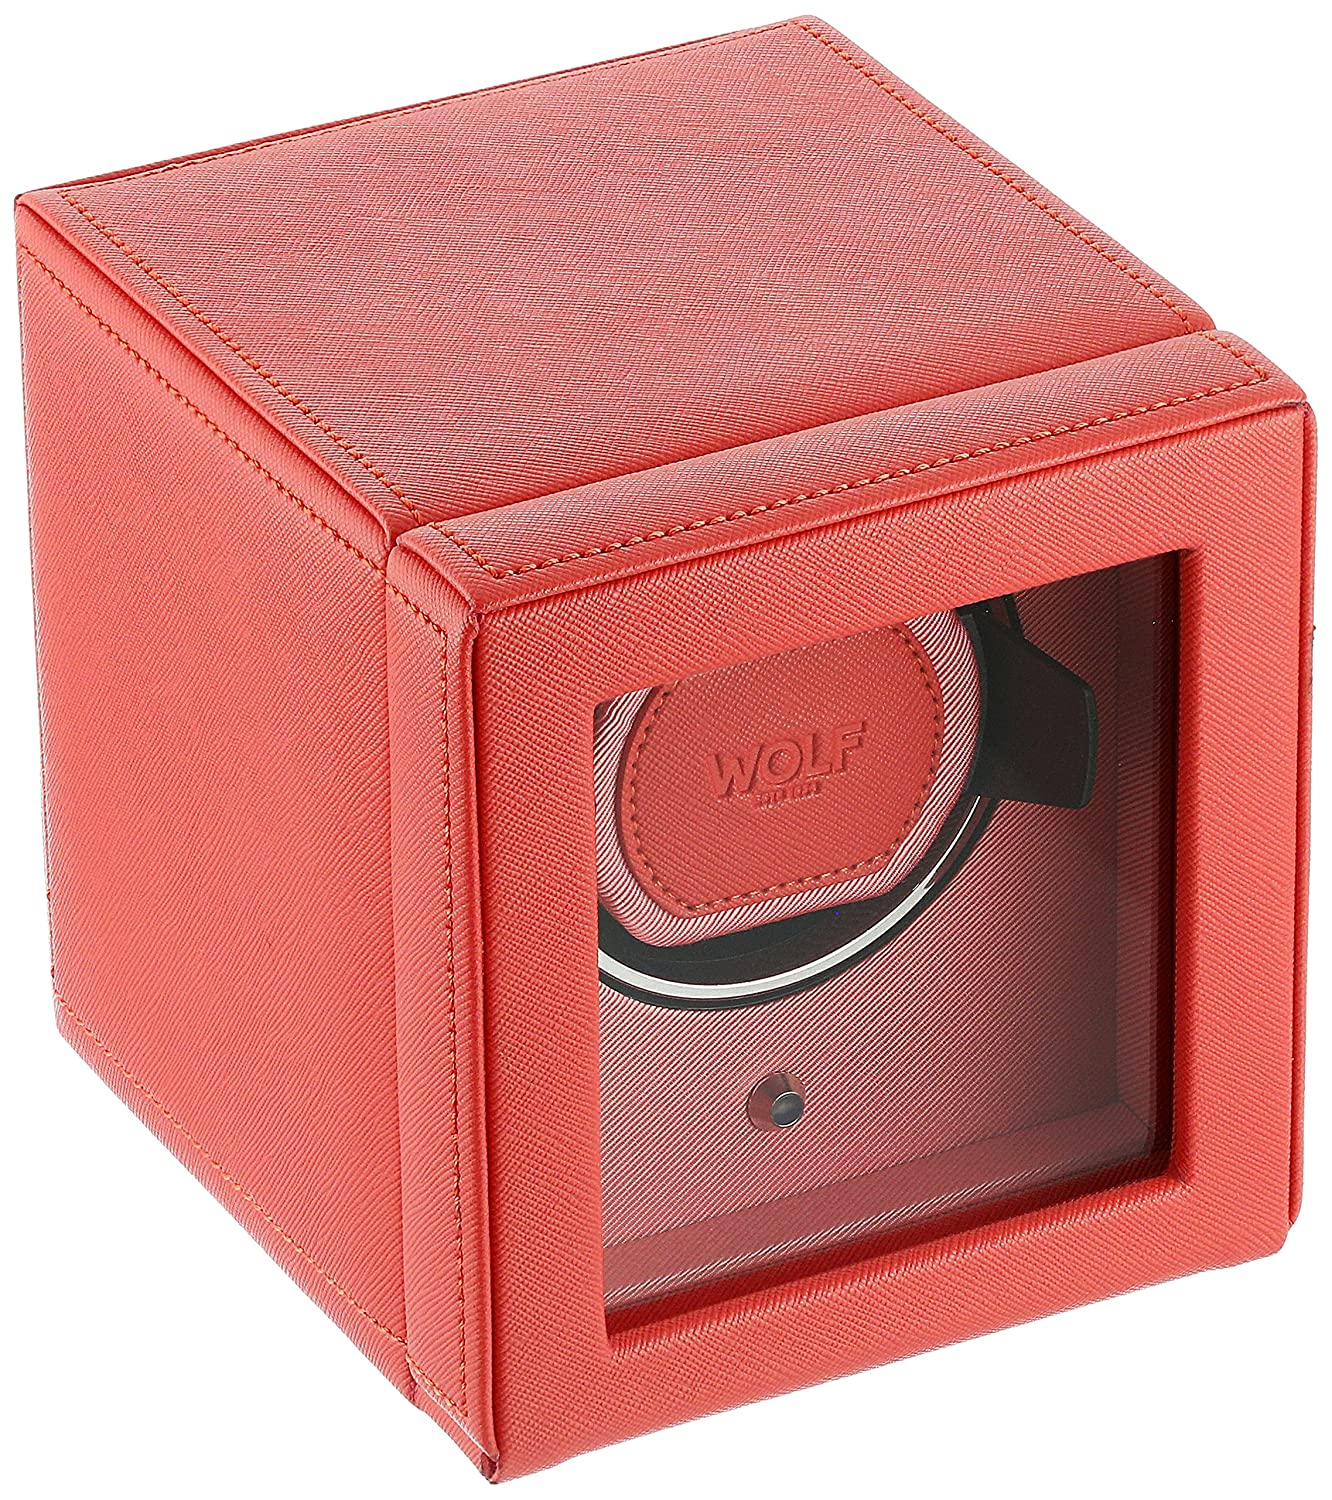 Wolf Cub Winder With Cover - 461142 Coral